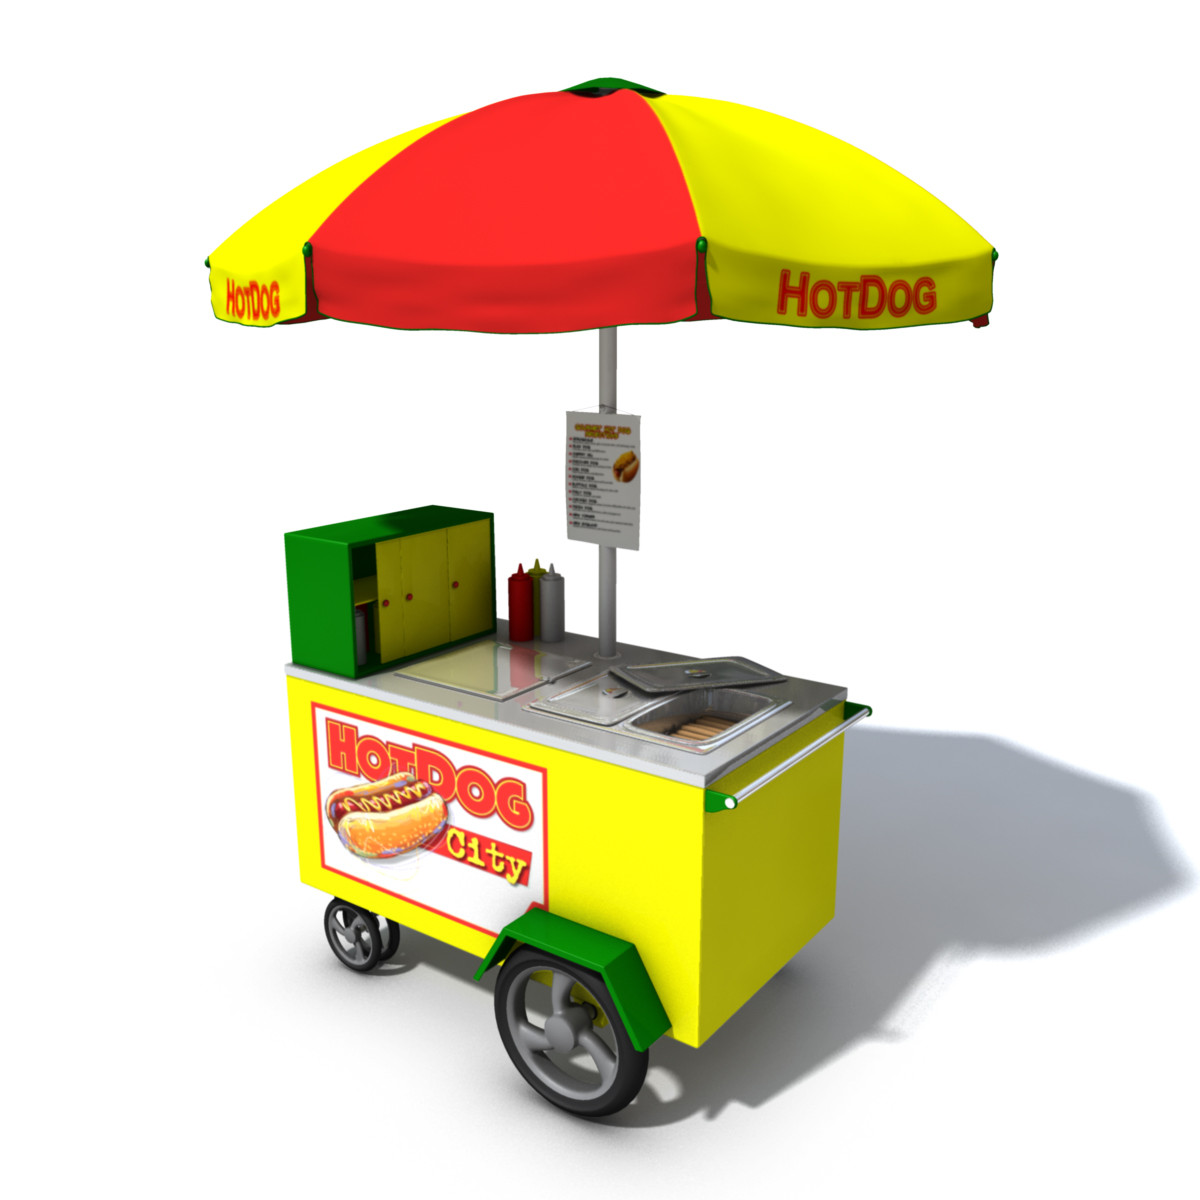 Hot Dog Trailer Concession Model